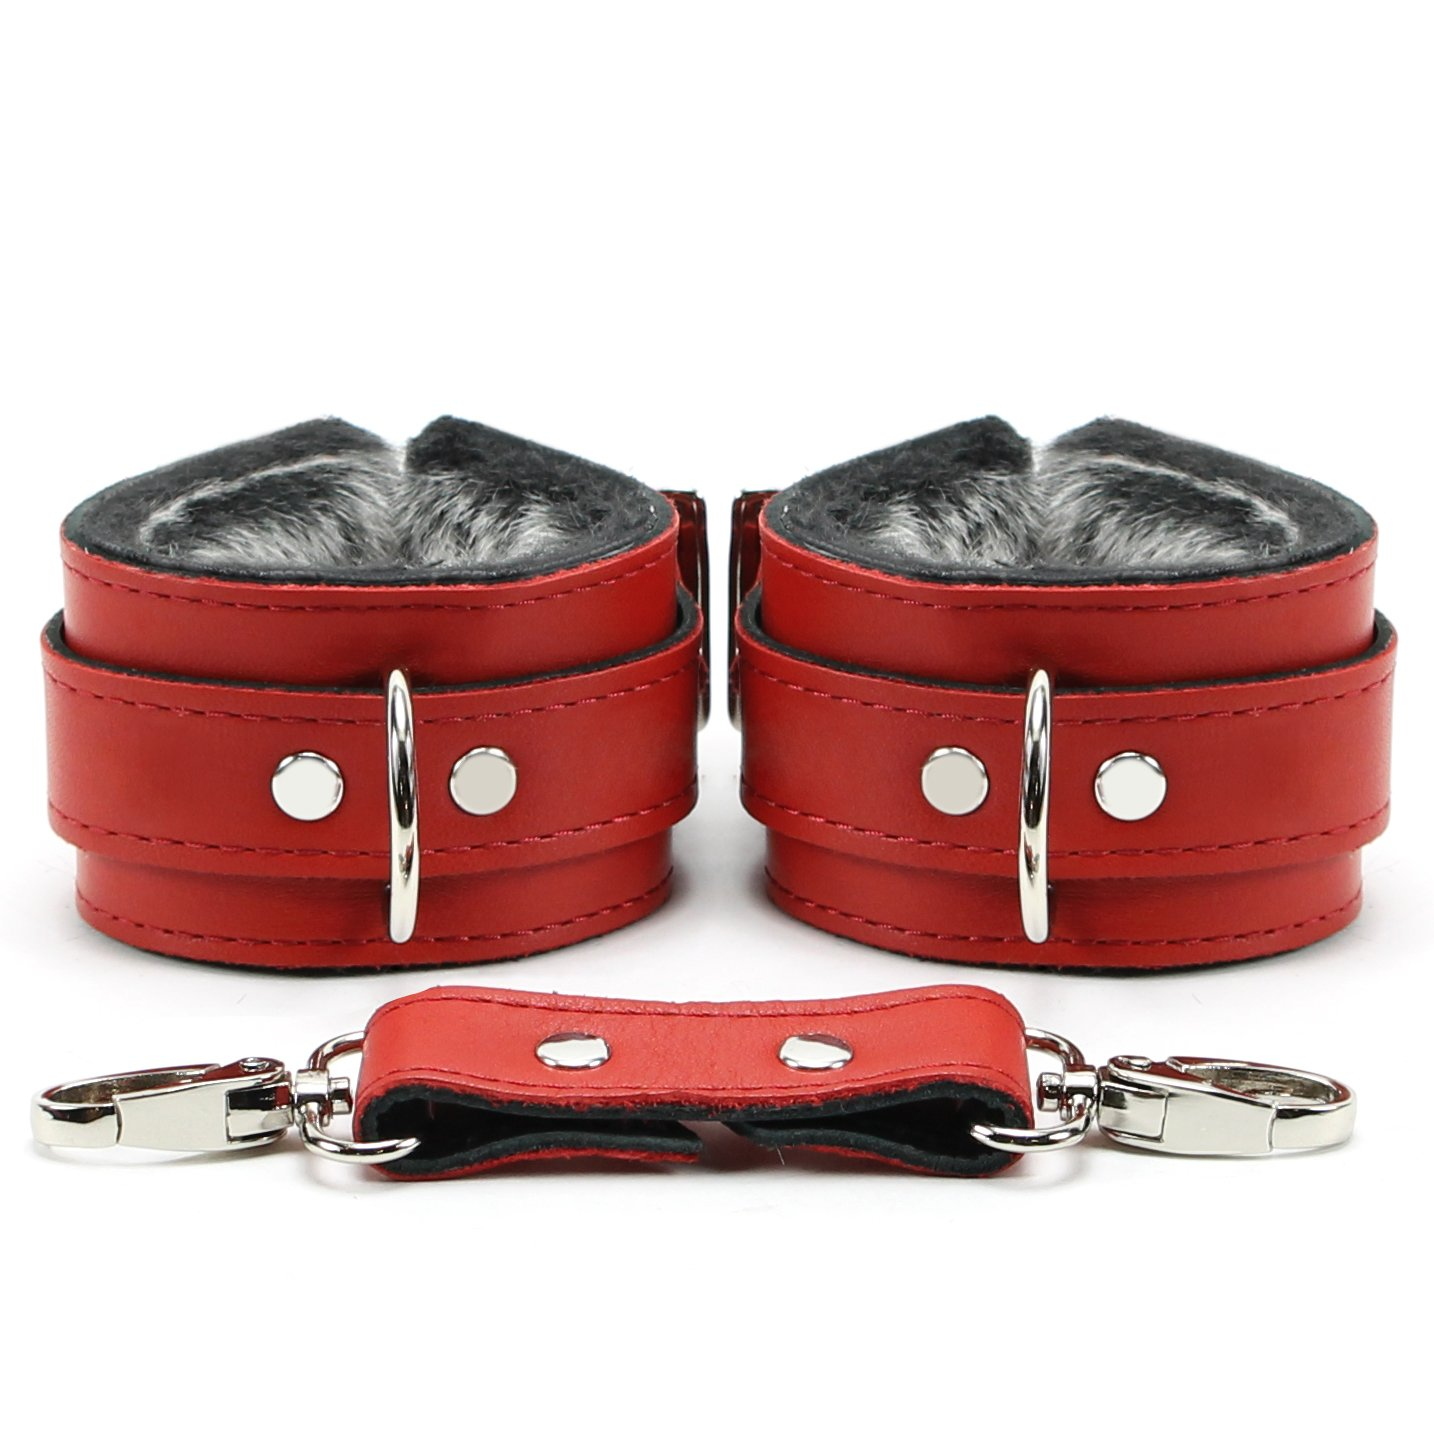 Barcelona Wrist and Ankle Cuffs Soft Lamb Hide Natural Leather (Red, Ankle) by VP Leather